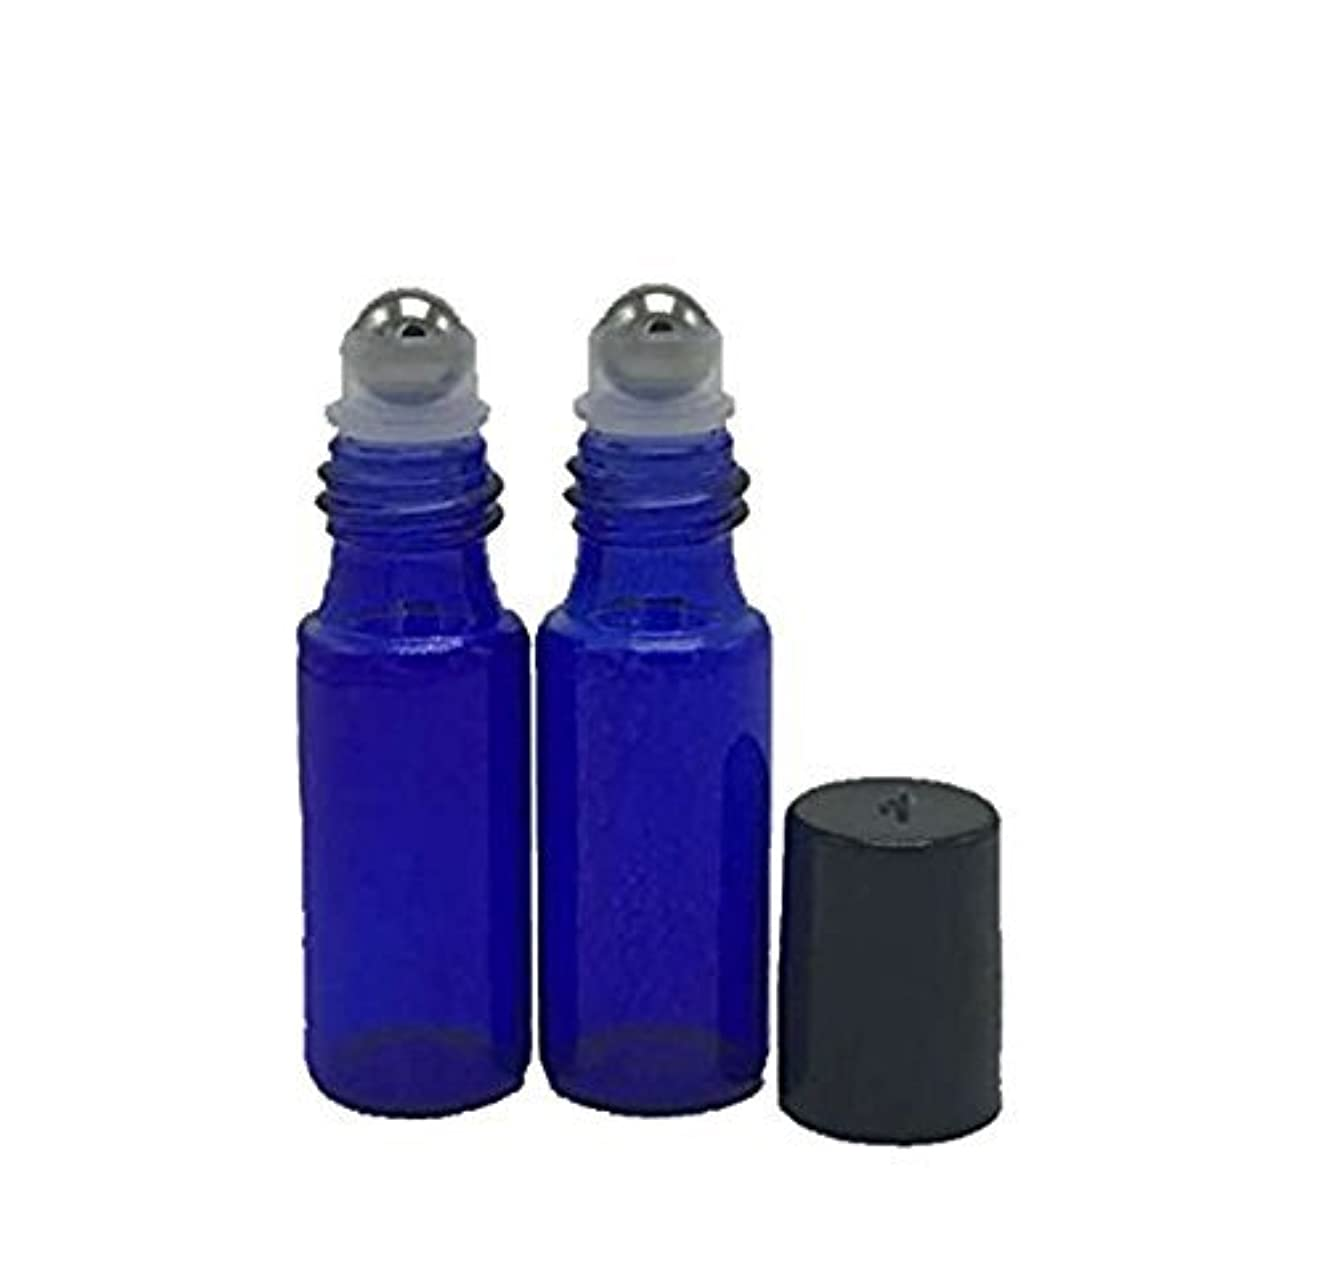 ドレイン親指トレイHaifly 12 Pcs 5 ml Empty Refillable Rollerball Glass Bottles for Essential Oil with 3 ml Dropper Blue [並行輸入品]